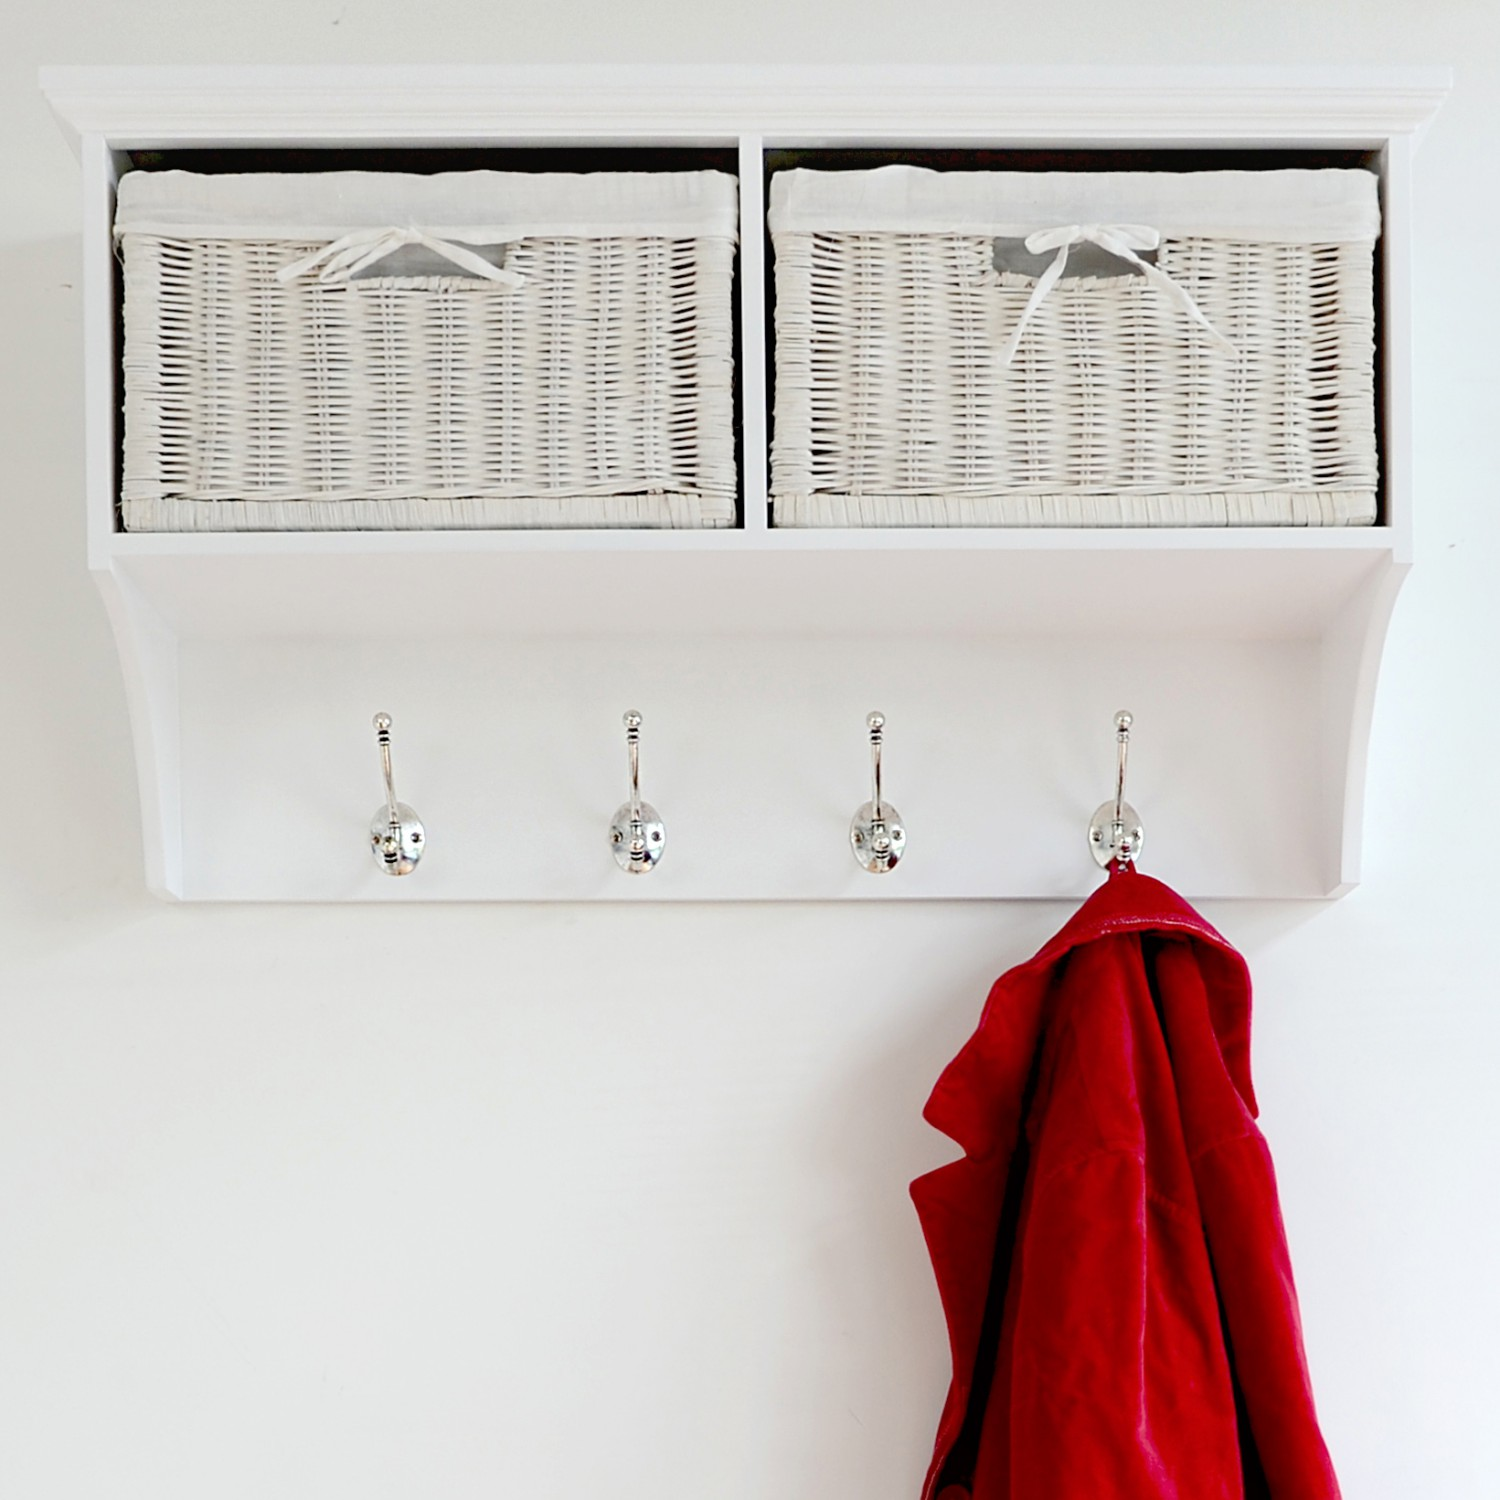 tetbury white coat rack with storage baskets, hallway hanging, Wohnideen design